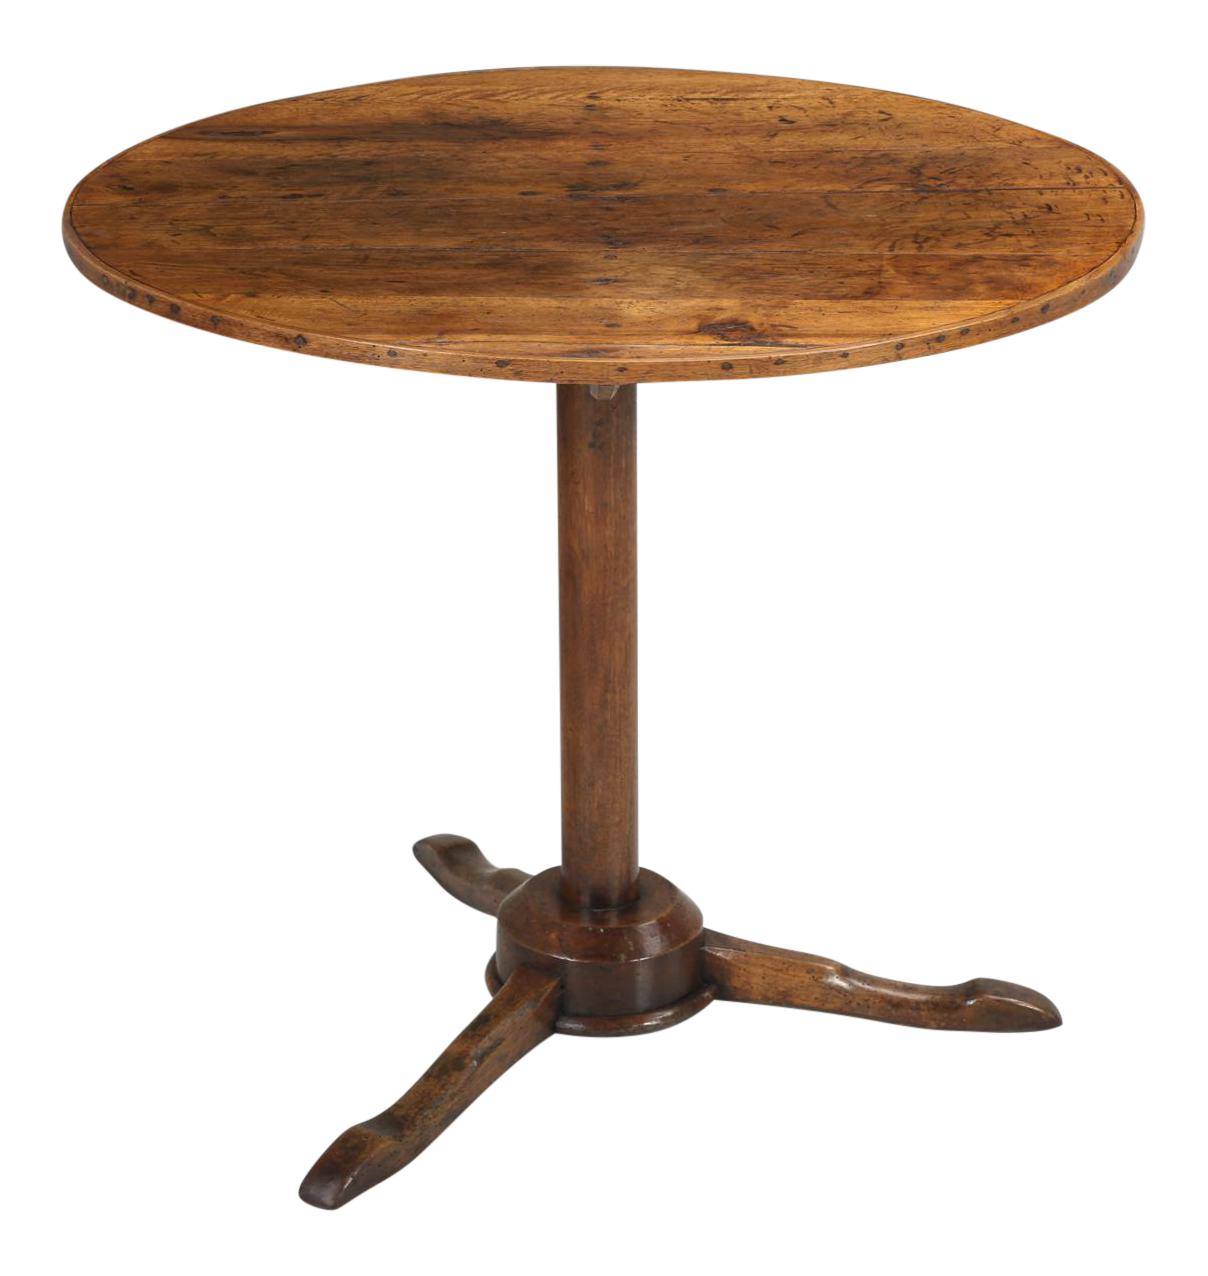 Antique Continental Pedestal Table Chairish